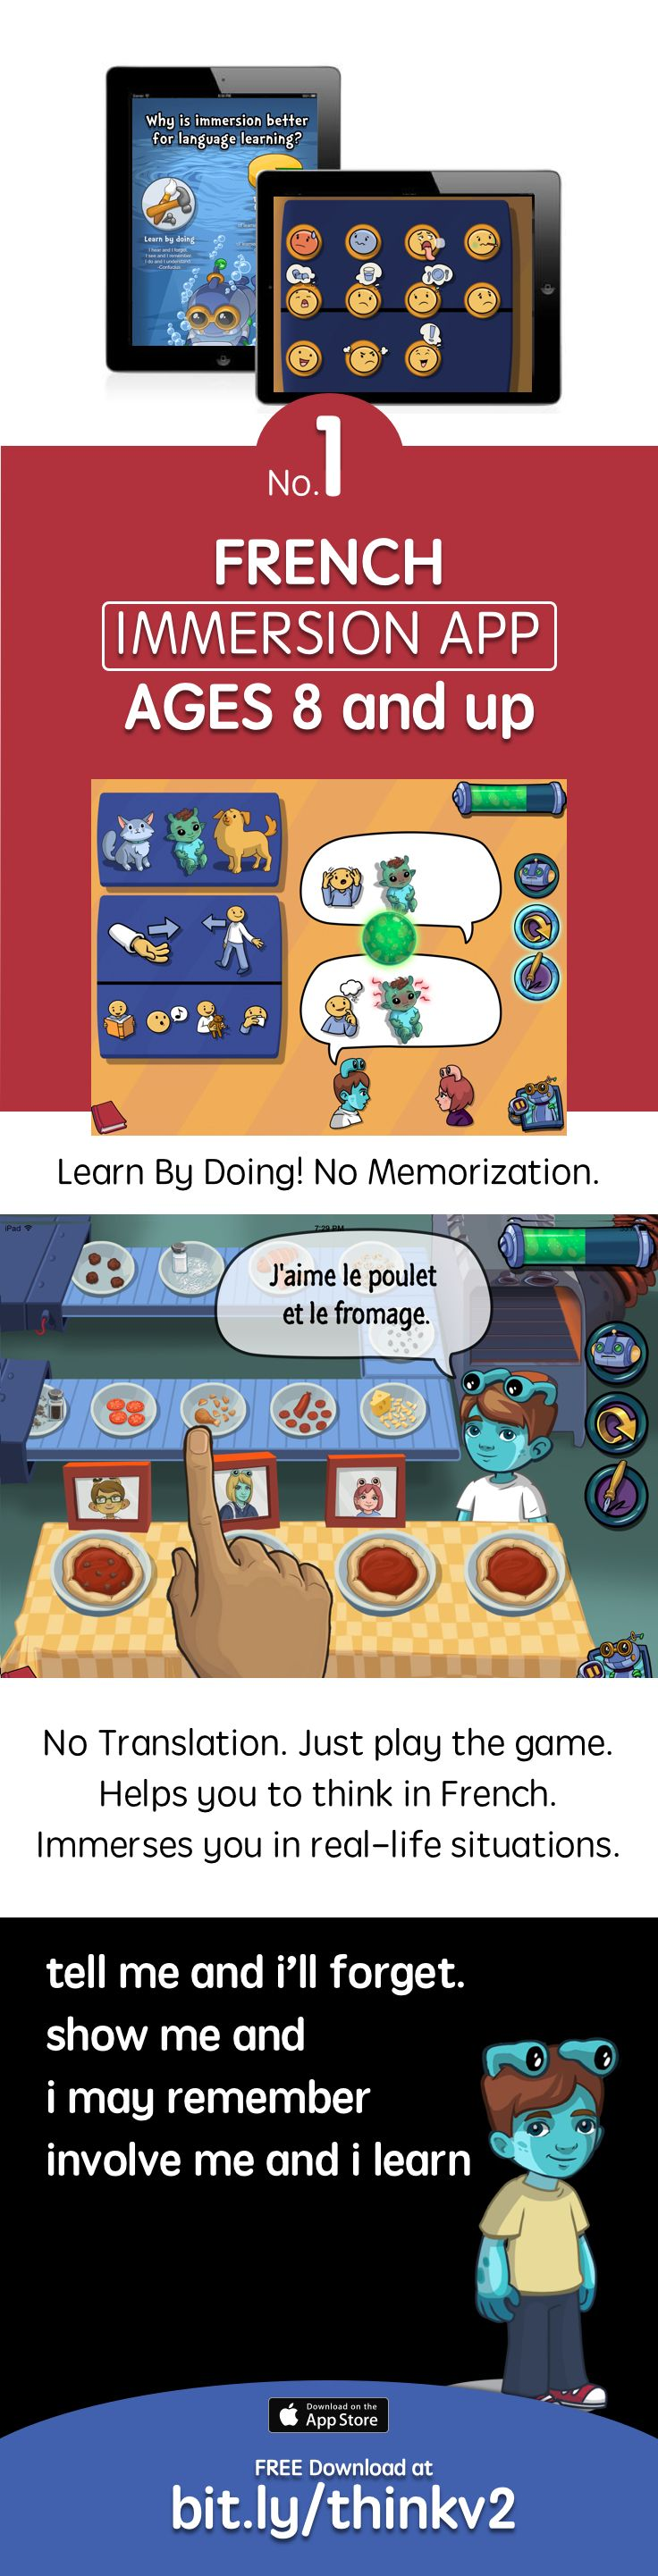 Learn French using the first ever Immersion app Free download https://itunes.apple.com/us/app/apple-store/id984967146?pt=1948807&ct=think4&mt=8